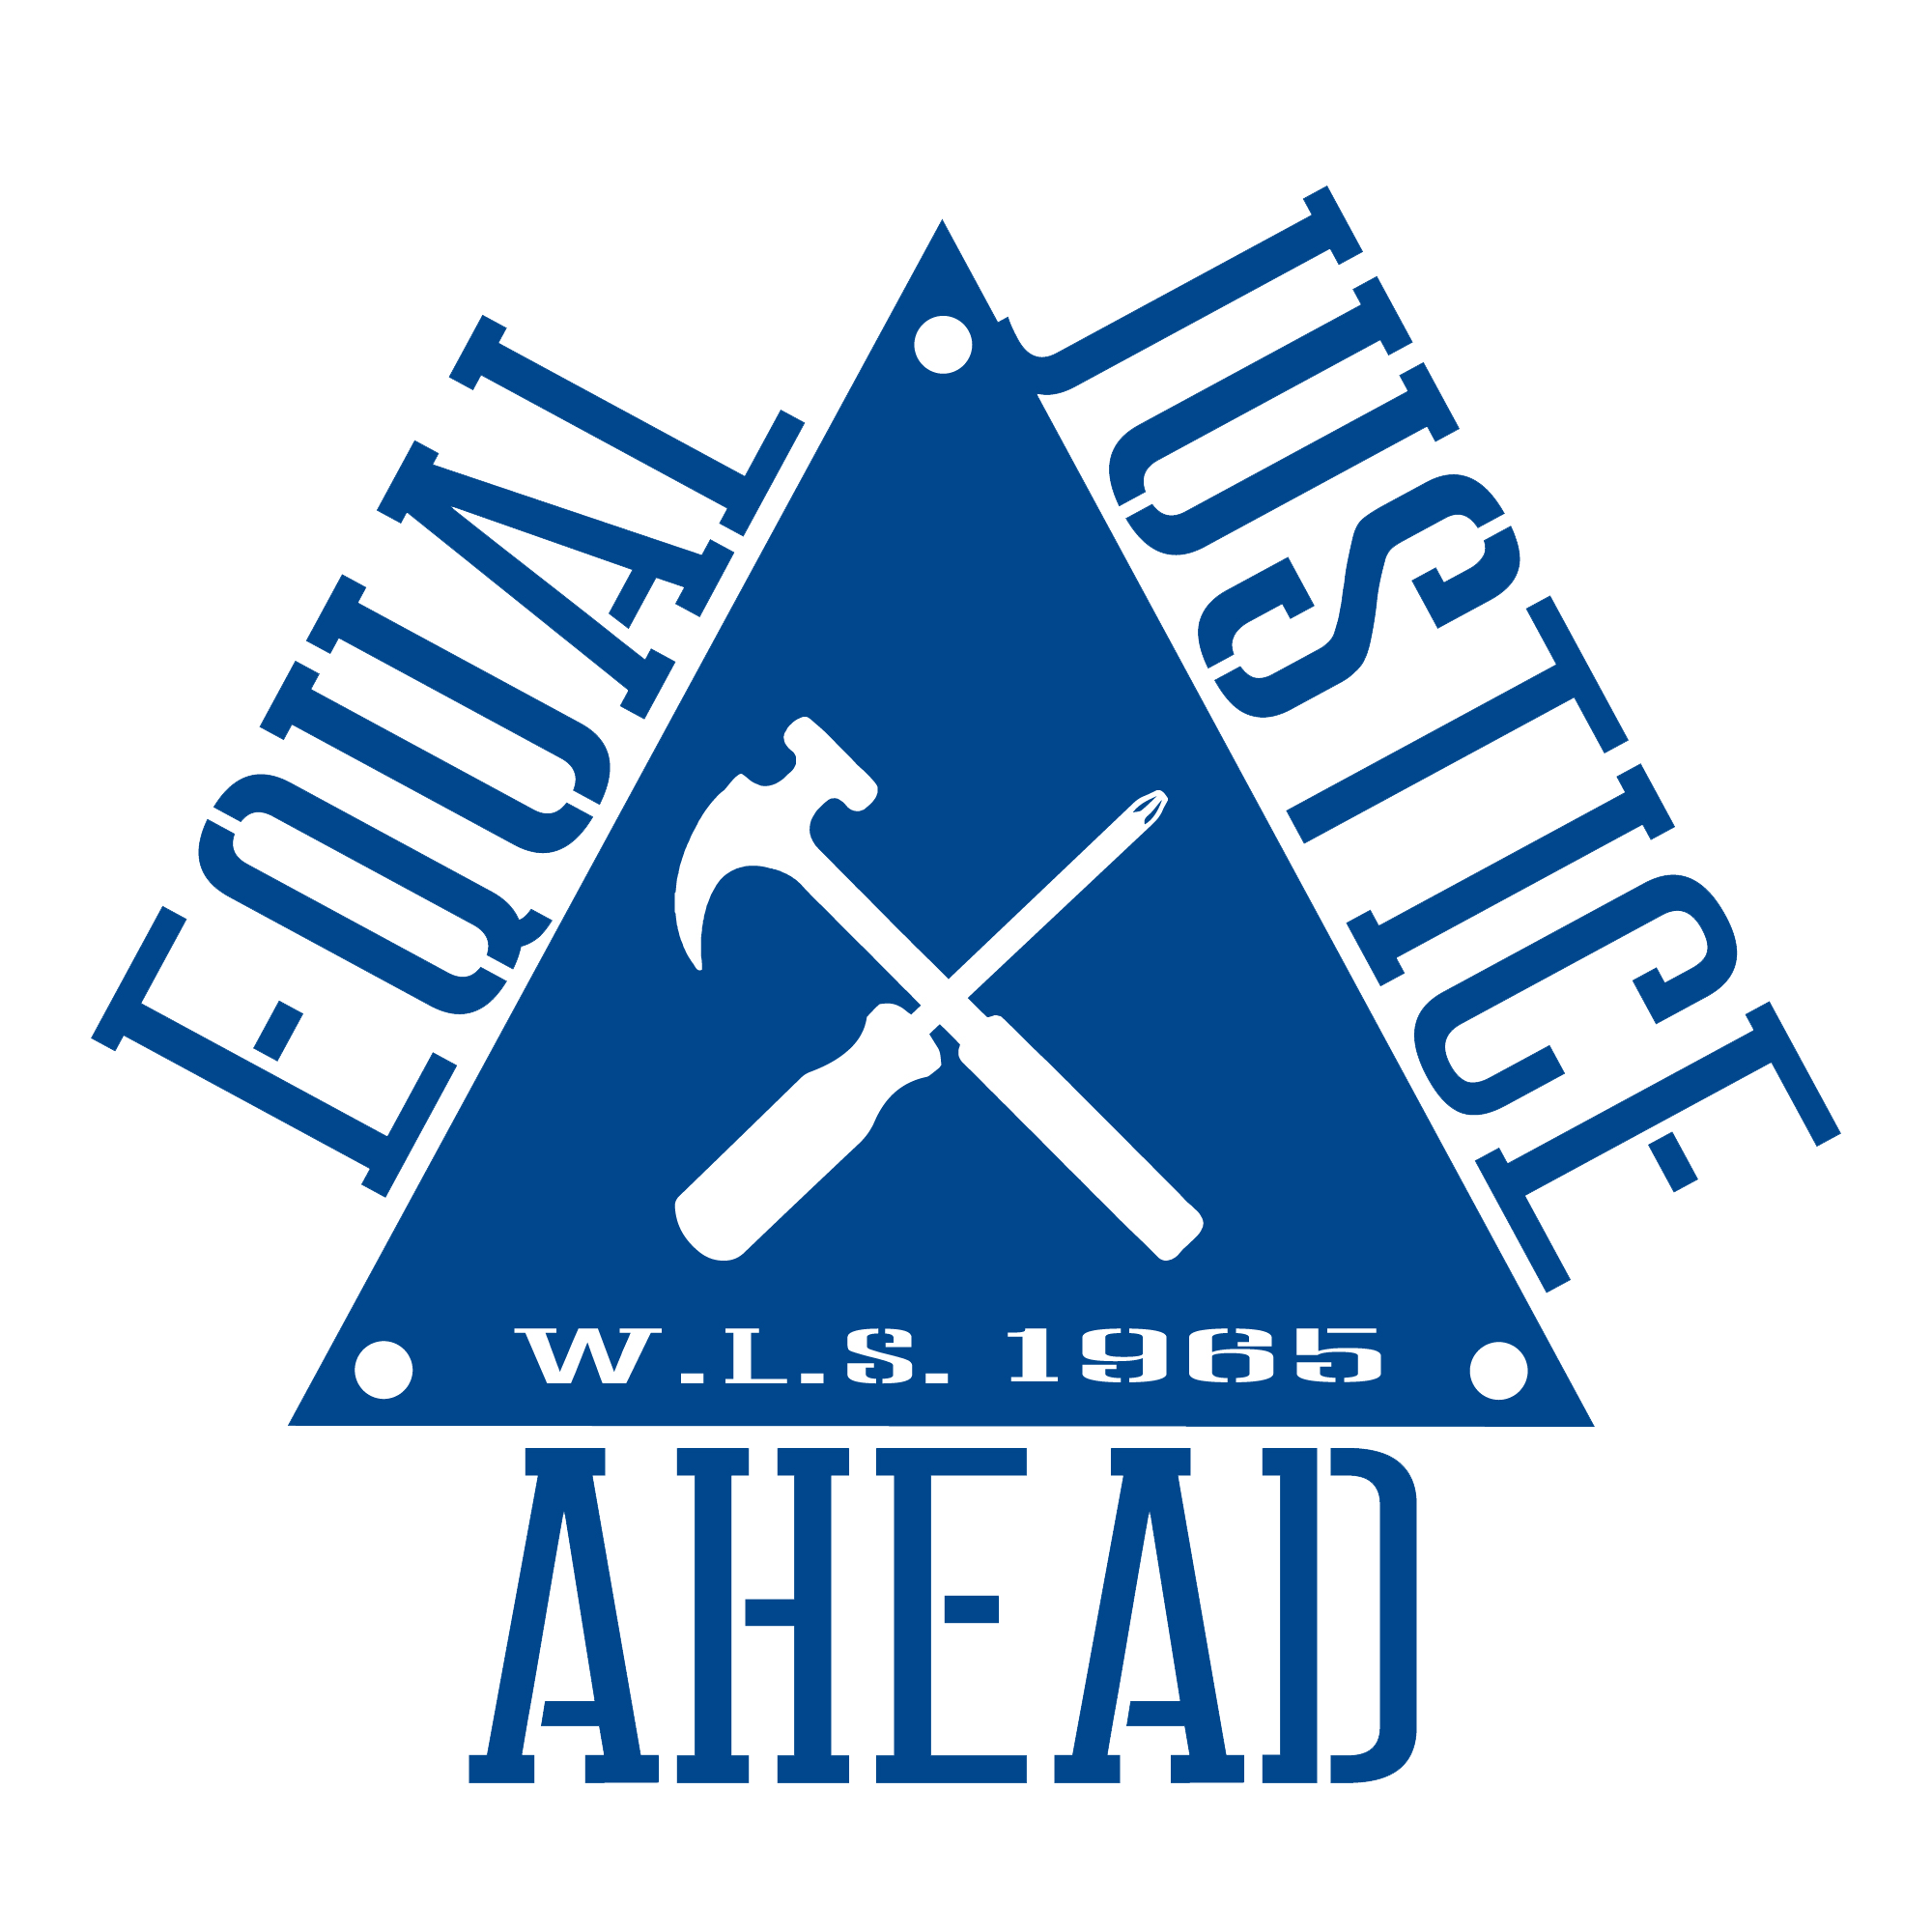 Washoe Legal Services Equal Justice Ahead Renovation Campaign